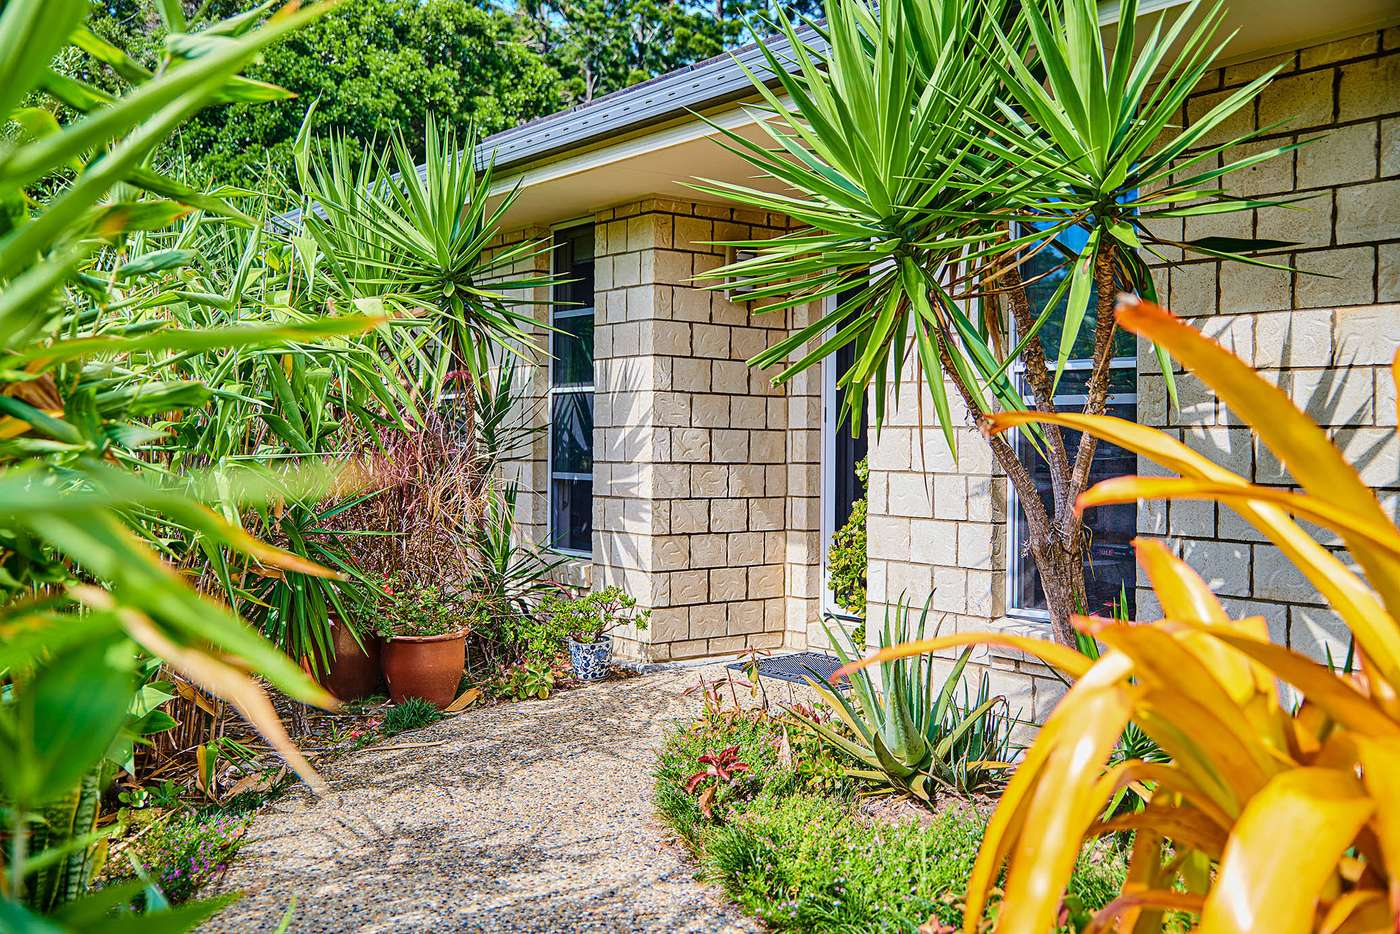 Main view of Homely house listing, 4 Gara Ct, Ocean Shores NSW 2483